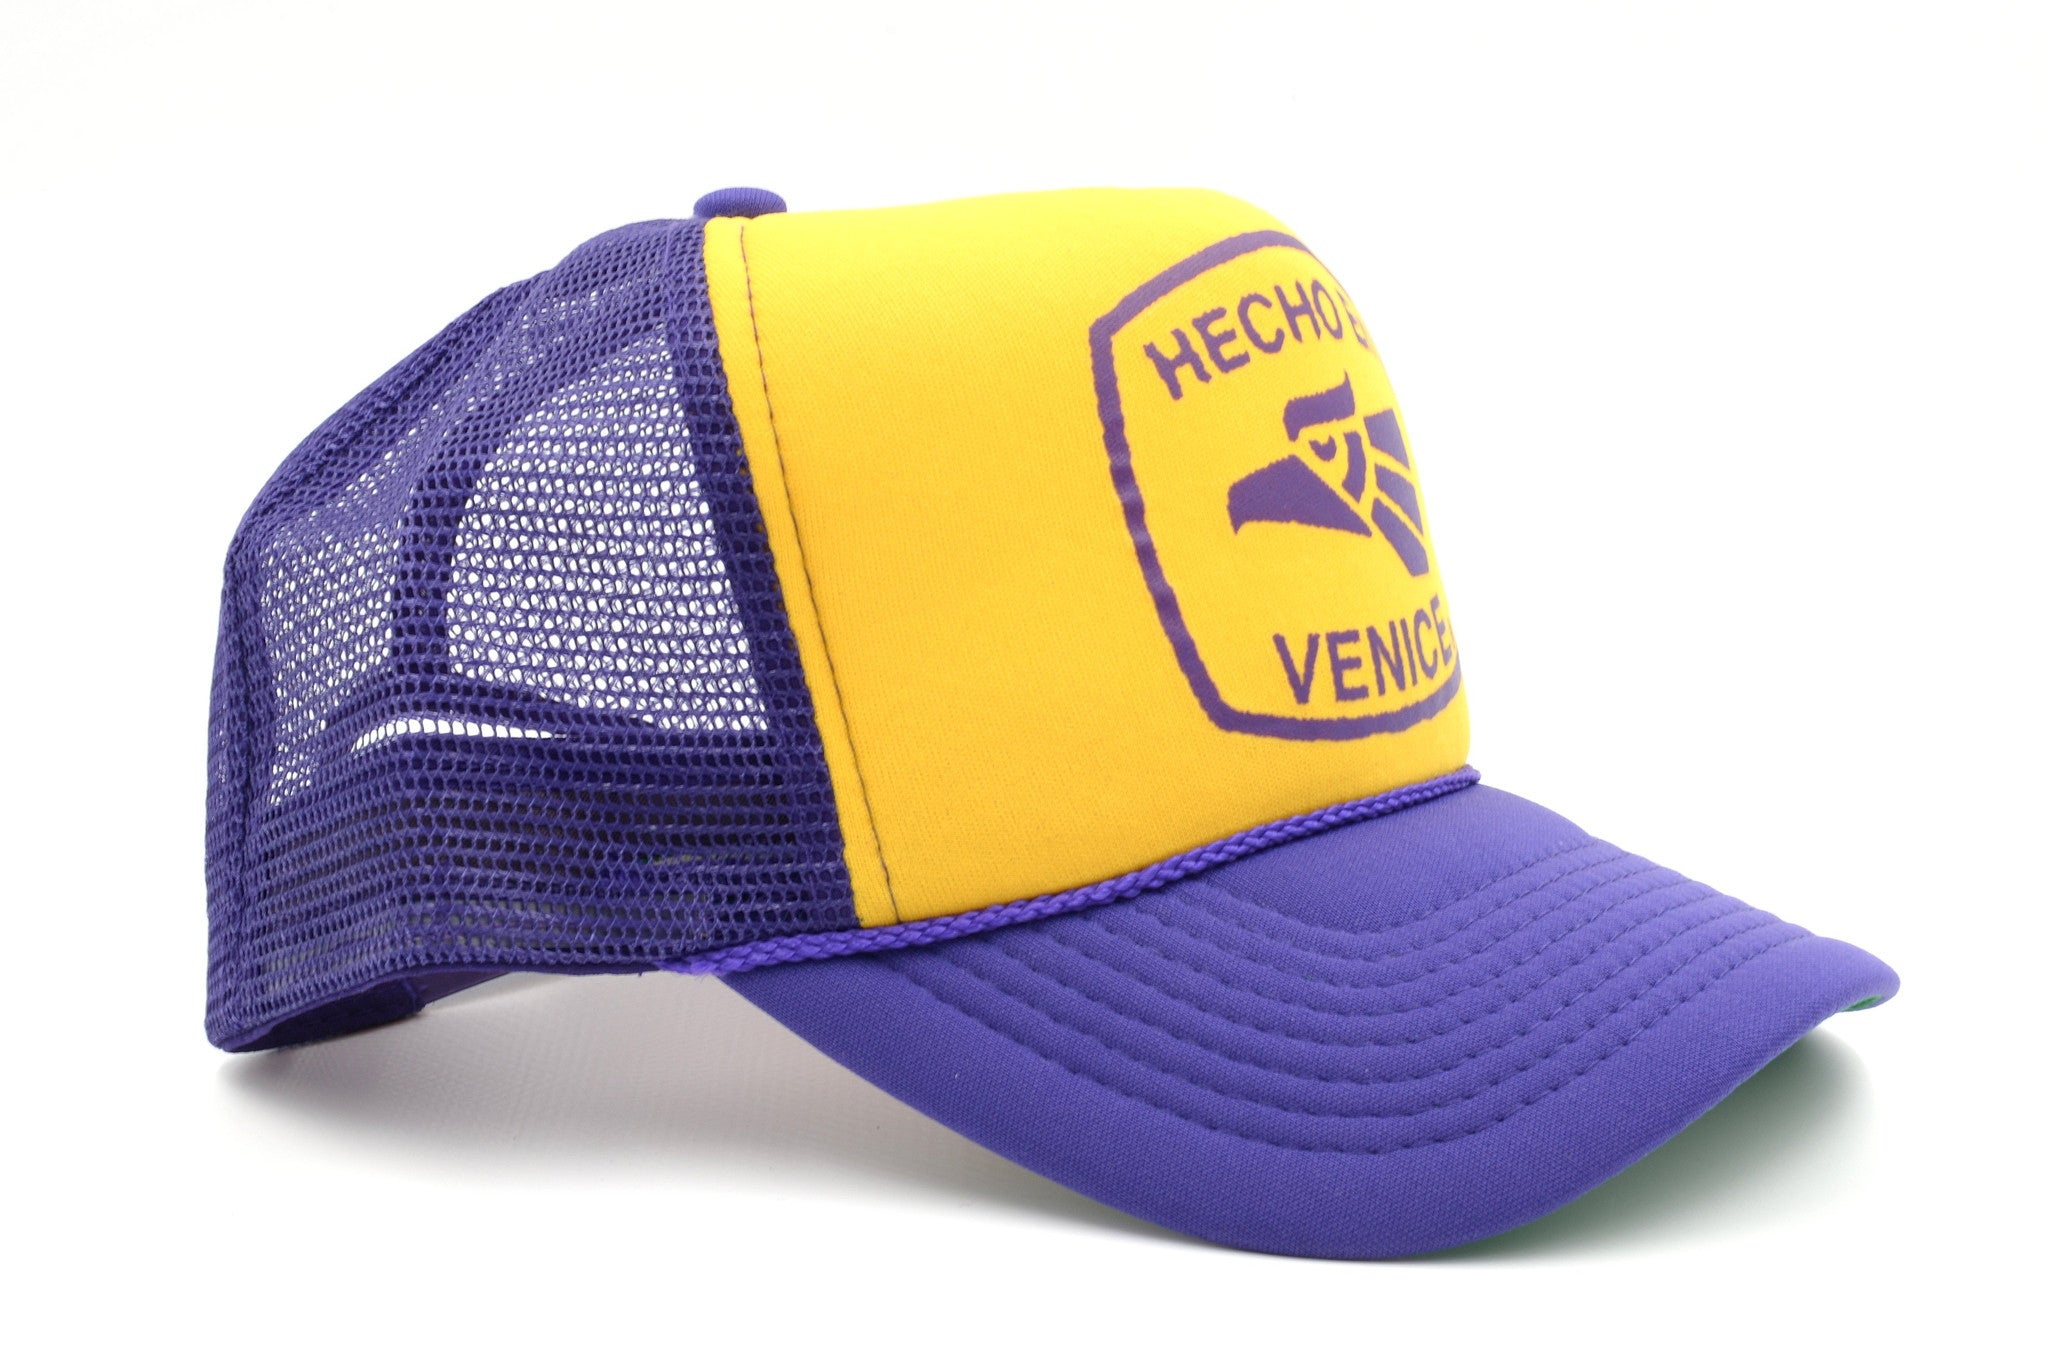 "HECHO EN VENICE TRUCKER HAT - ""LAKERS"" COLORS"